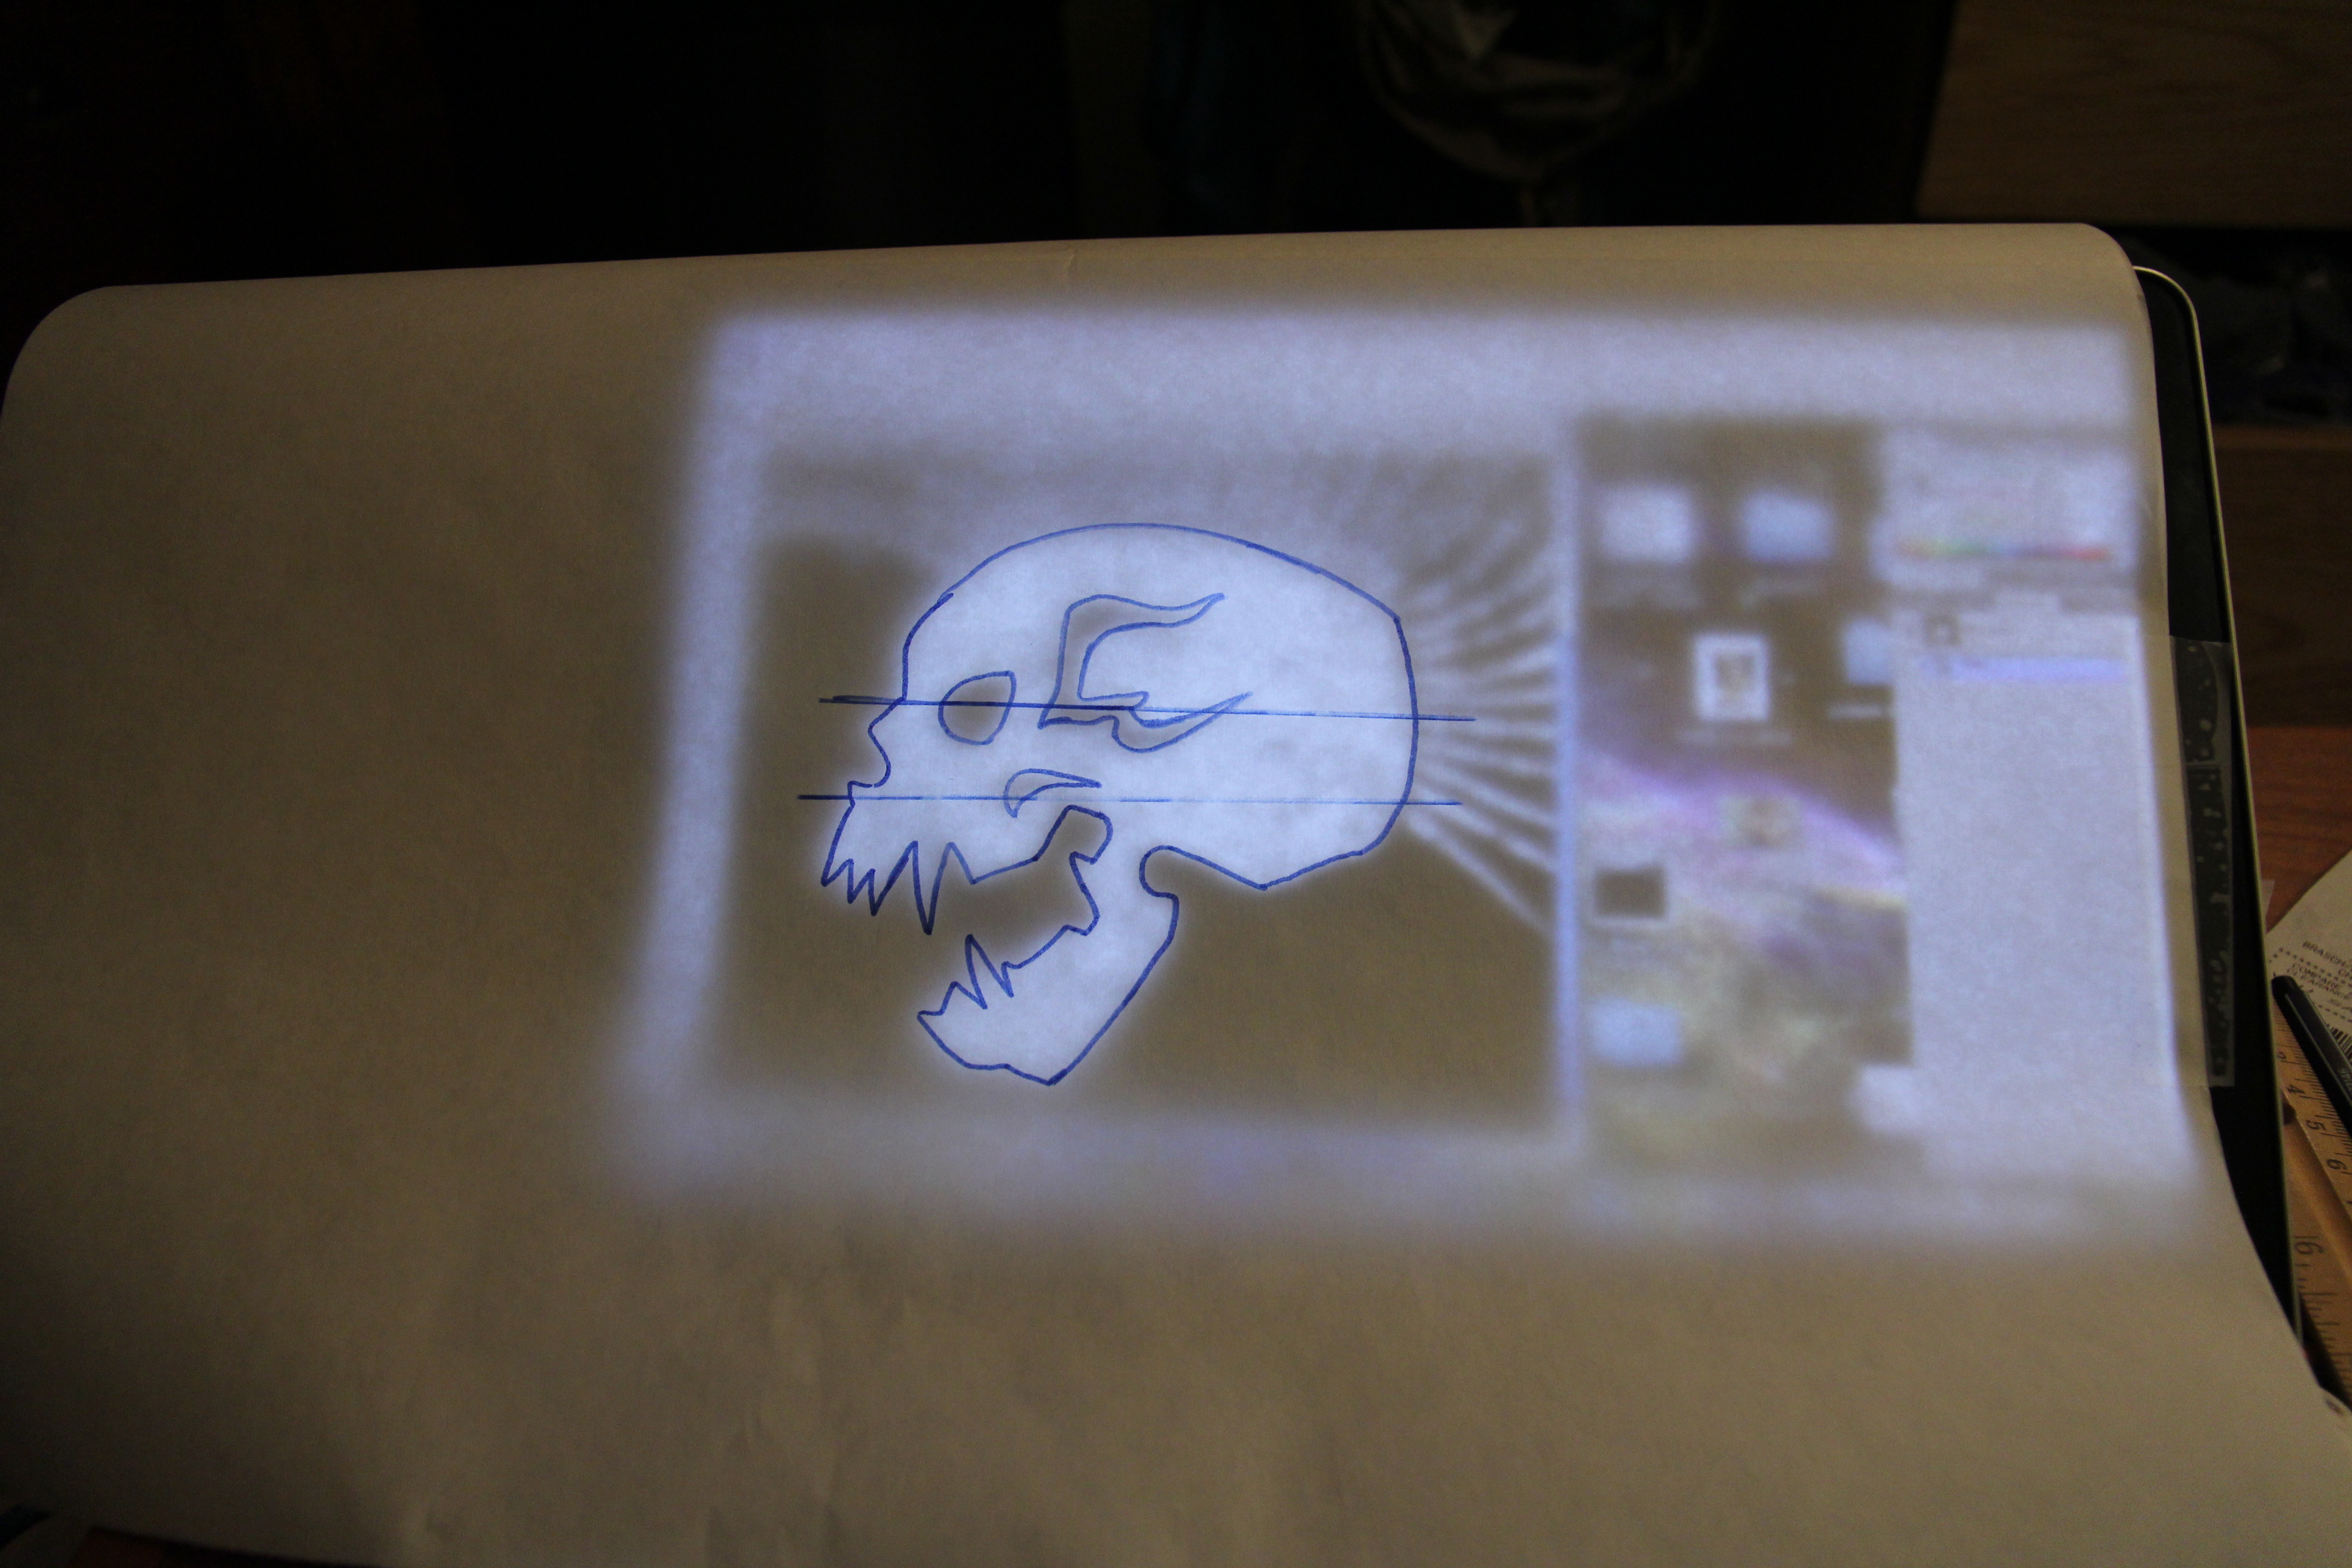 Picture of Bleached Skull Stencil- Tracing the Image